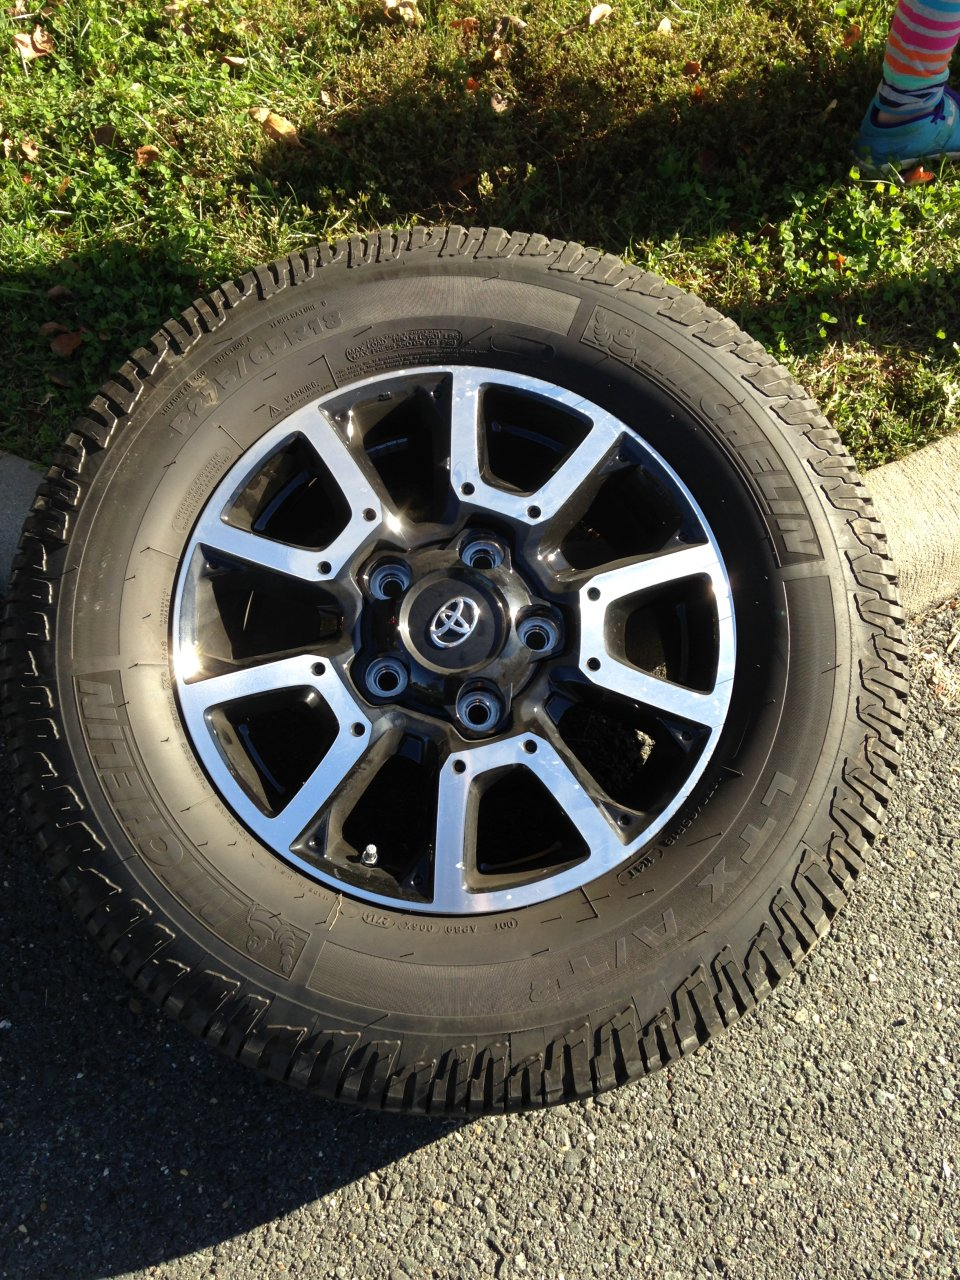 2014 Tundra Wheels >> For Sale - 2014 Tundra TRD wheels with tires | IH8MUD Forum